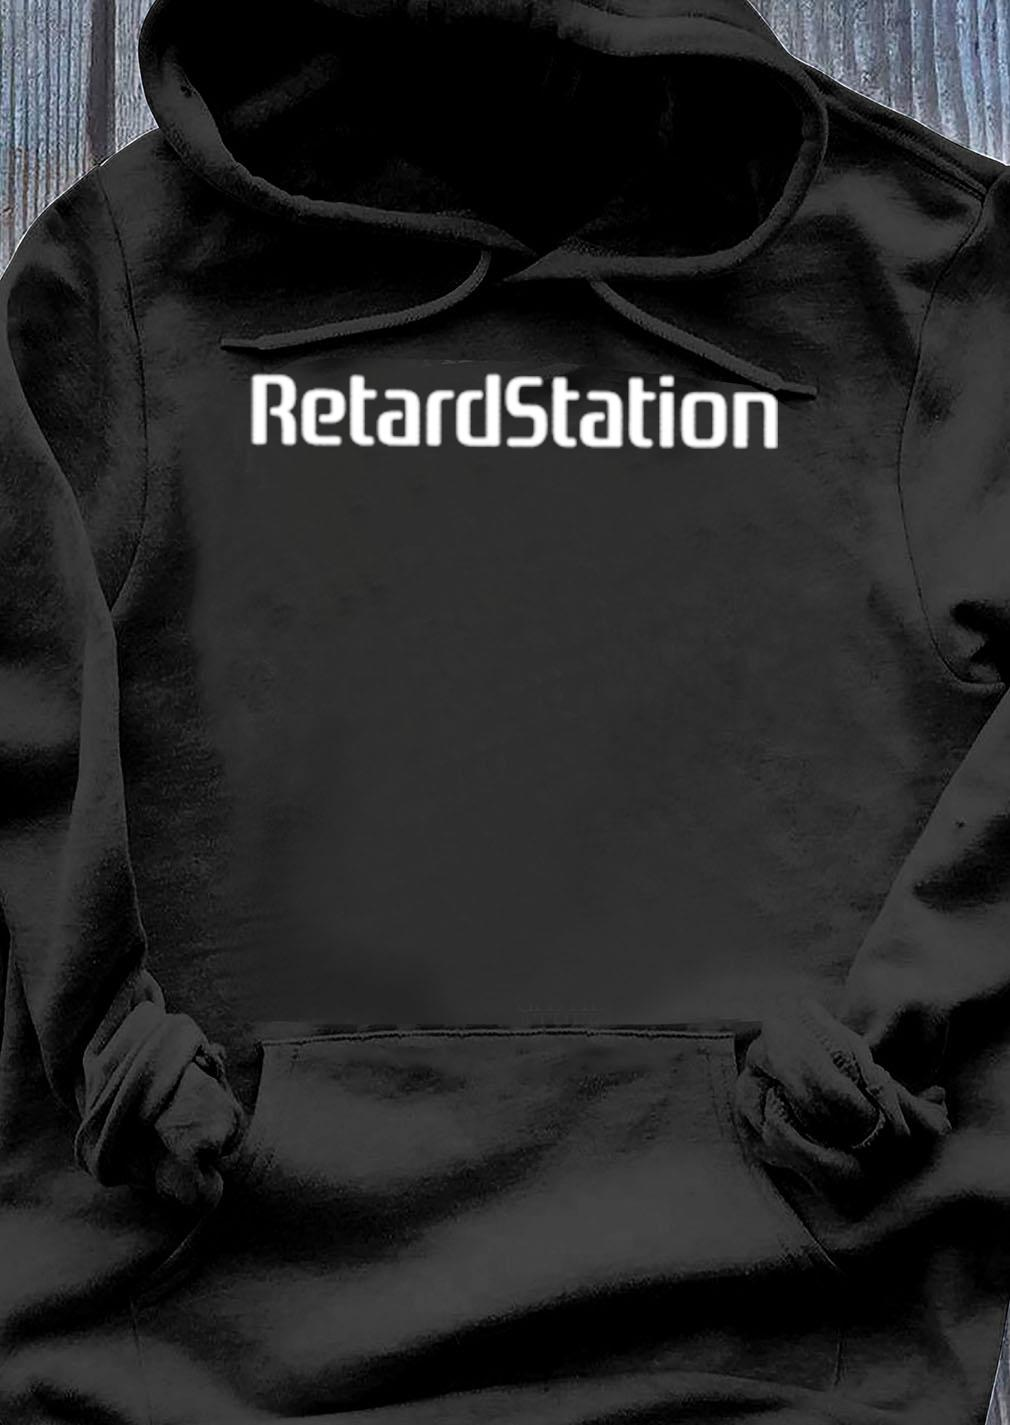 Official Retardstation Shirt Hoodie